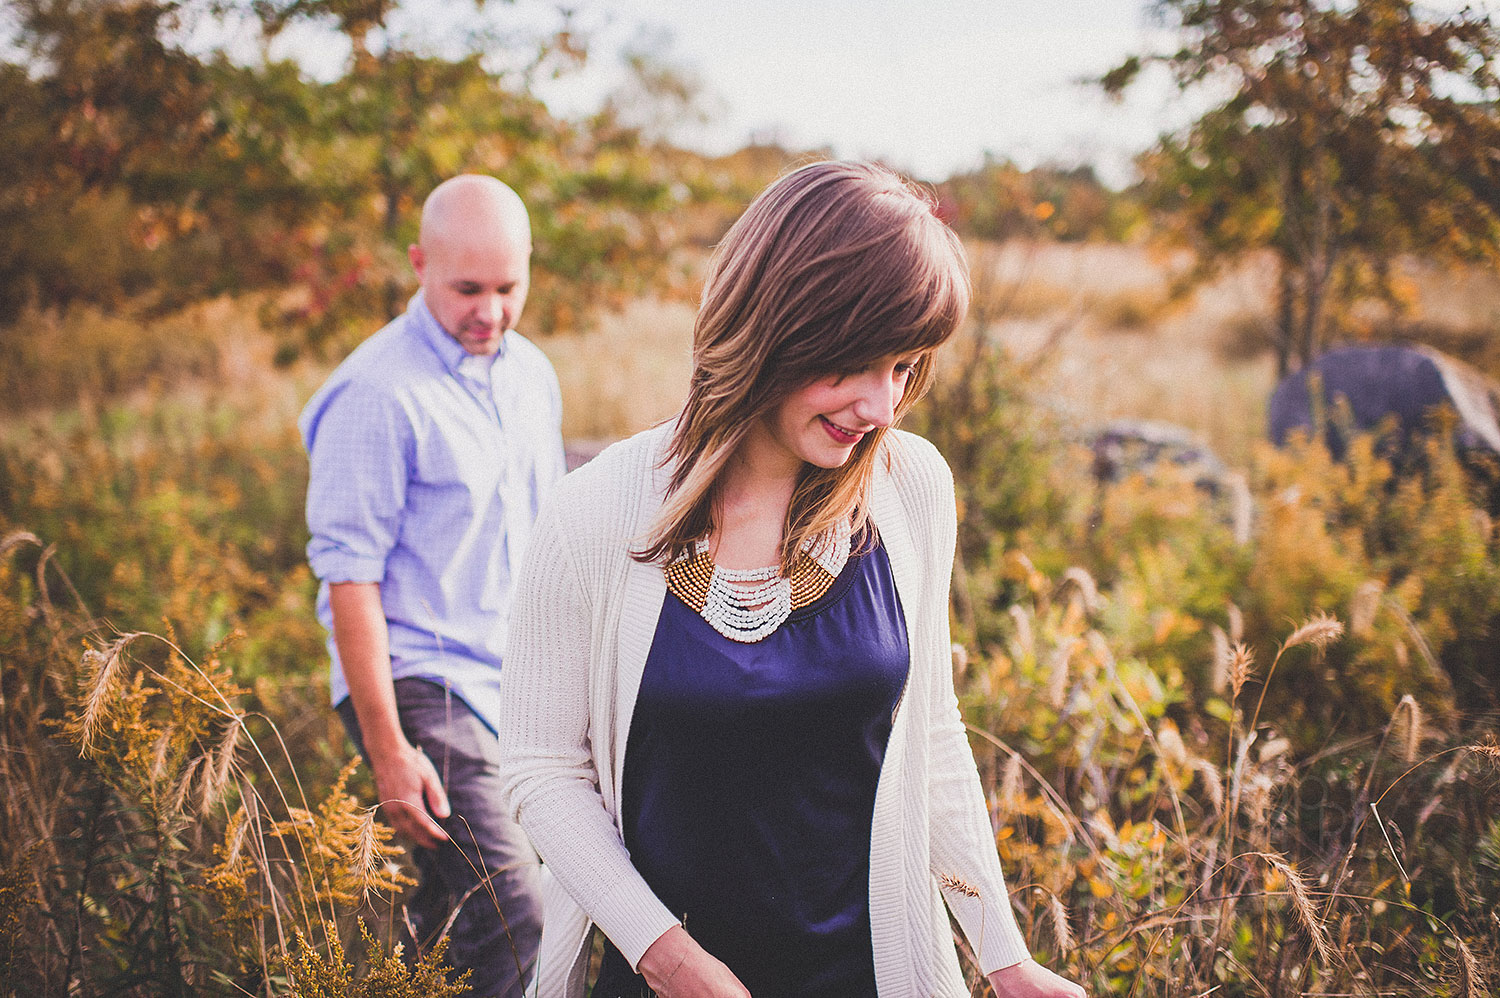 pat-robinson-photography-wilmington-engagement-session-5-2.jpg